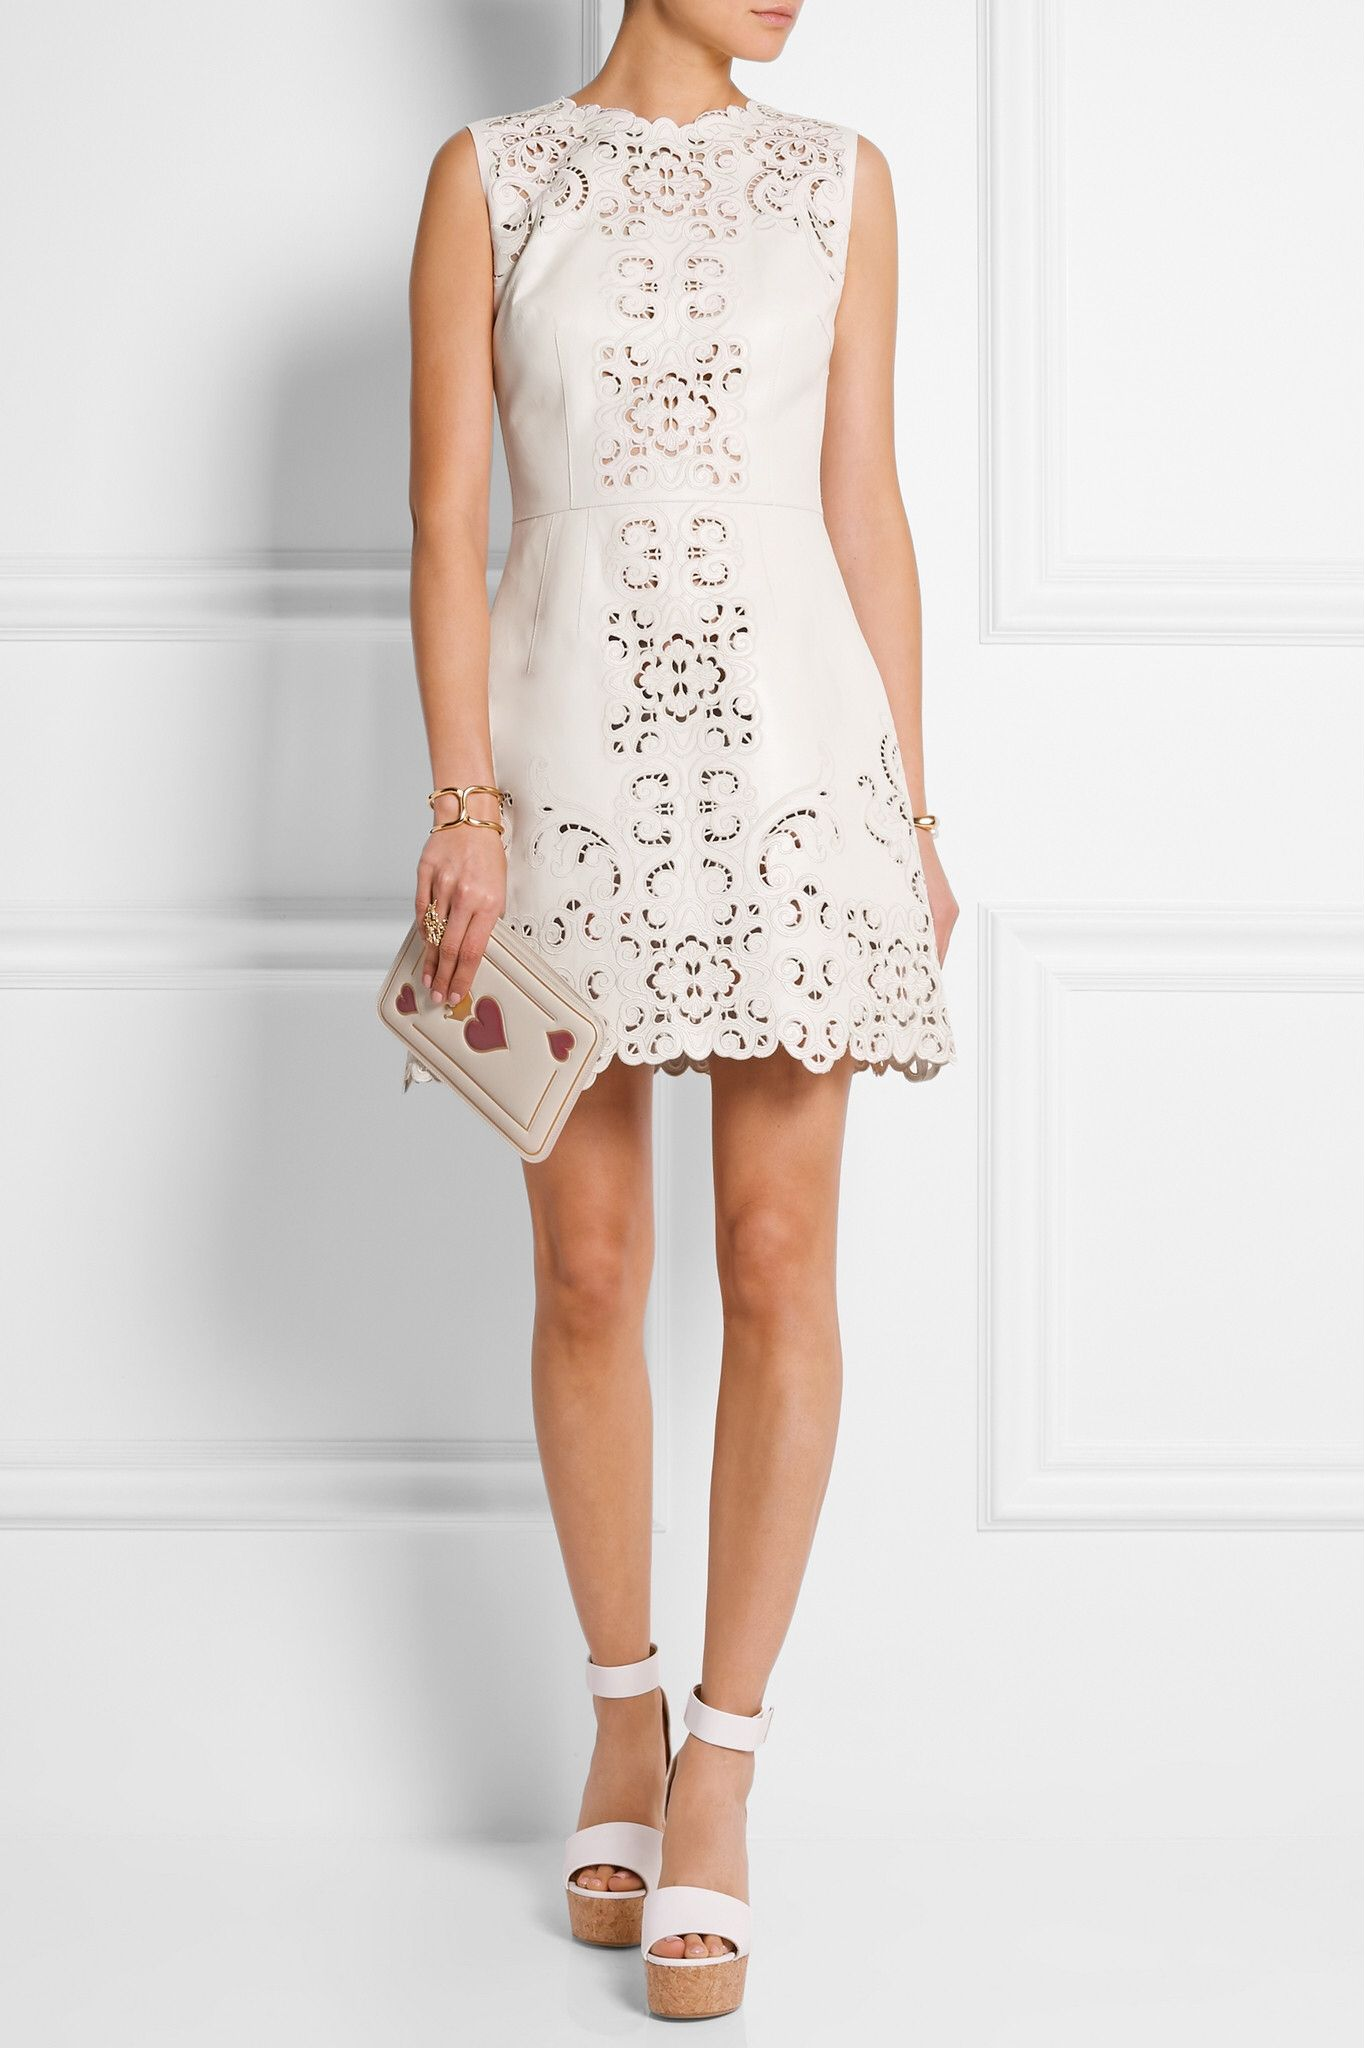 Leather wedding dress  Pin by Layo  on NetaPorter  Pinterest  Leather mini dress